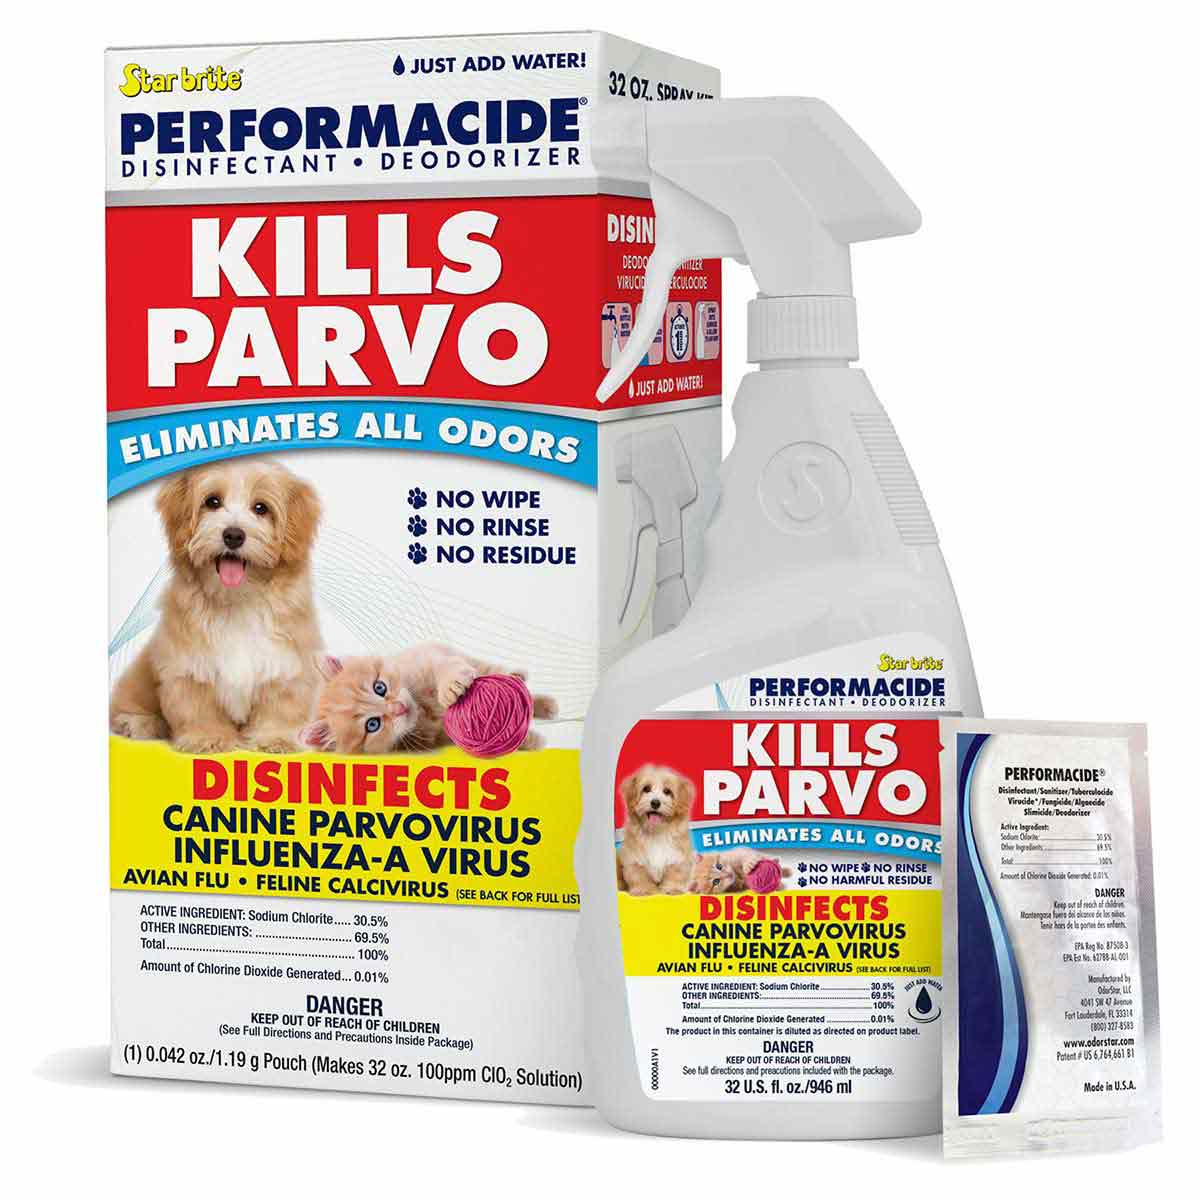 Star brite Performacide 32 oz Single Kit - Disinfects, Deodorizes and Kills Parvo